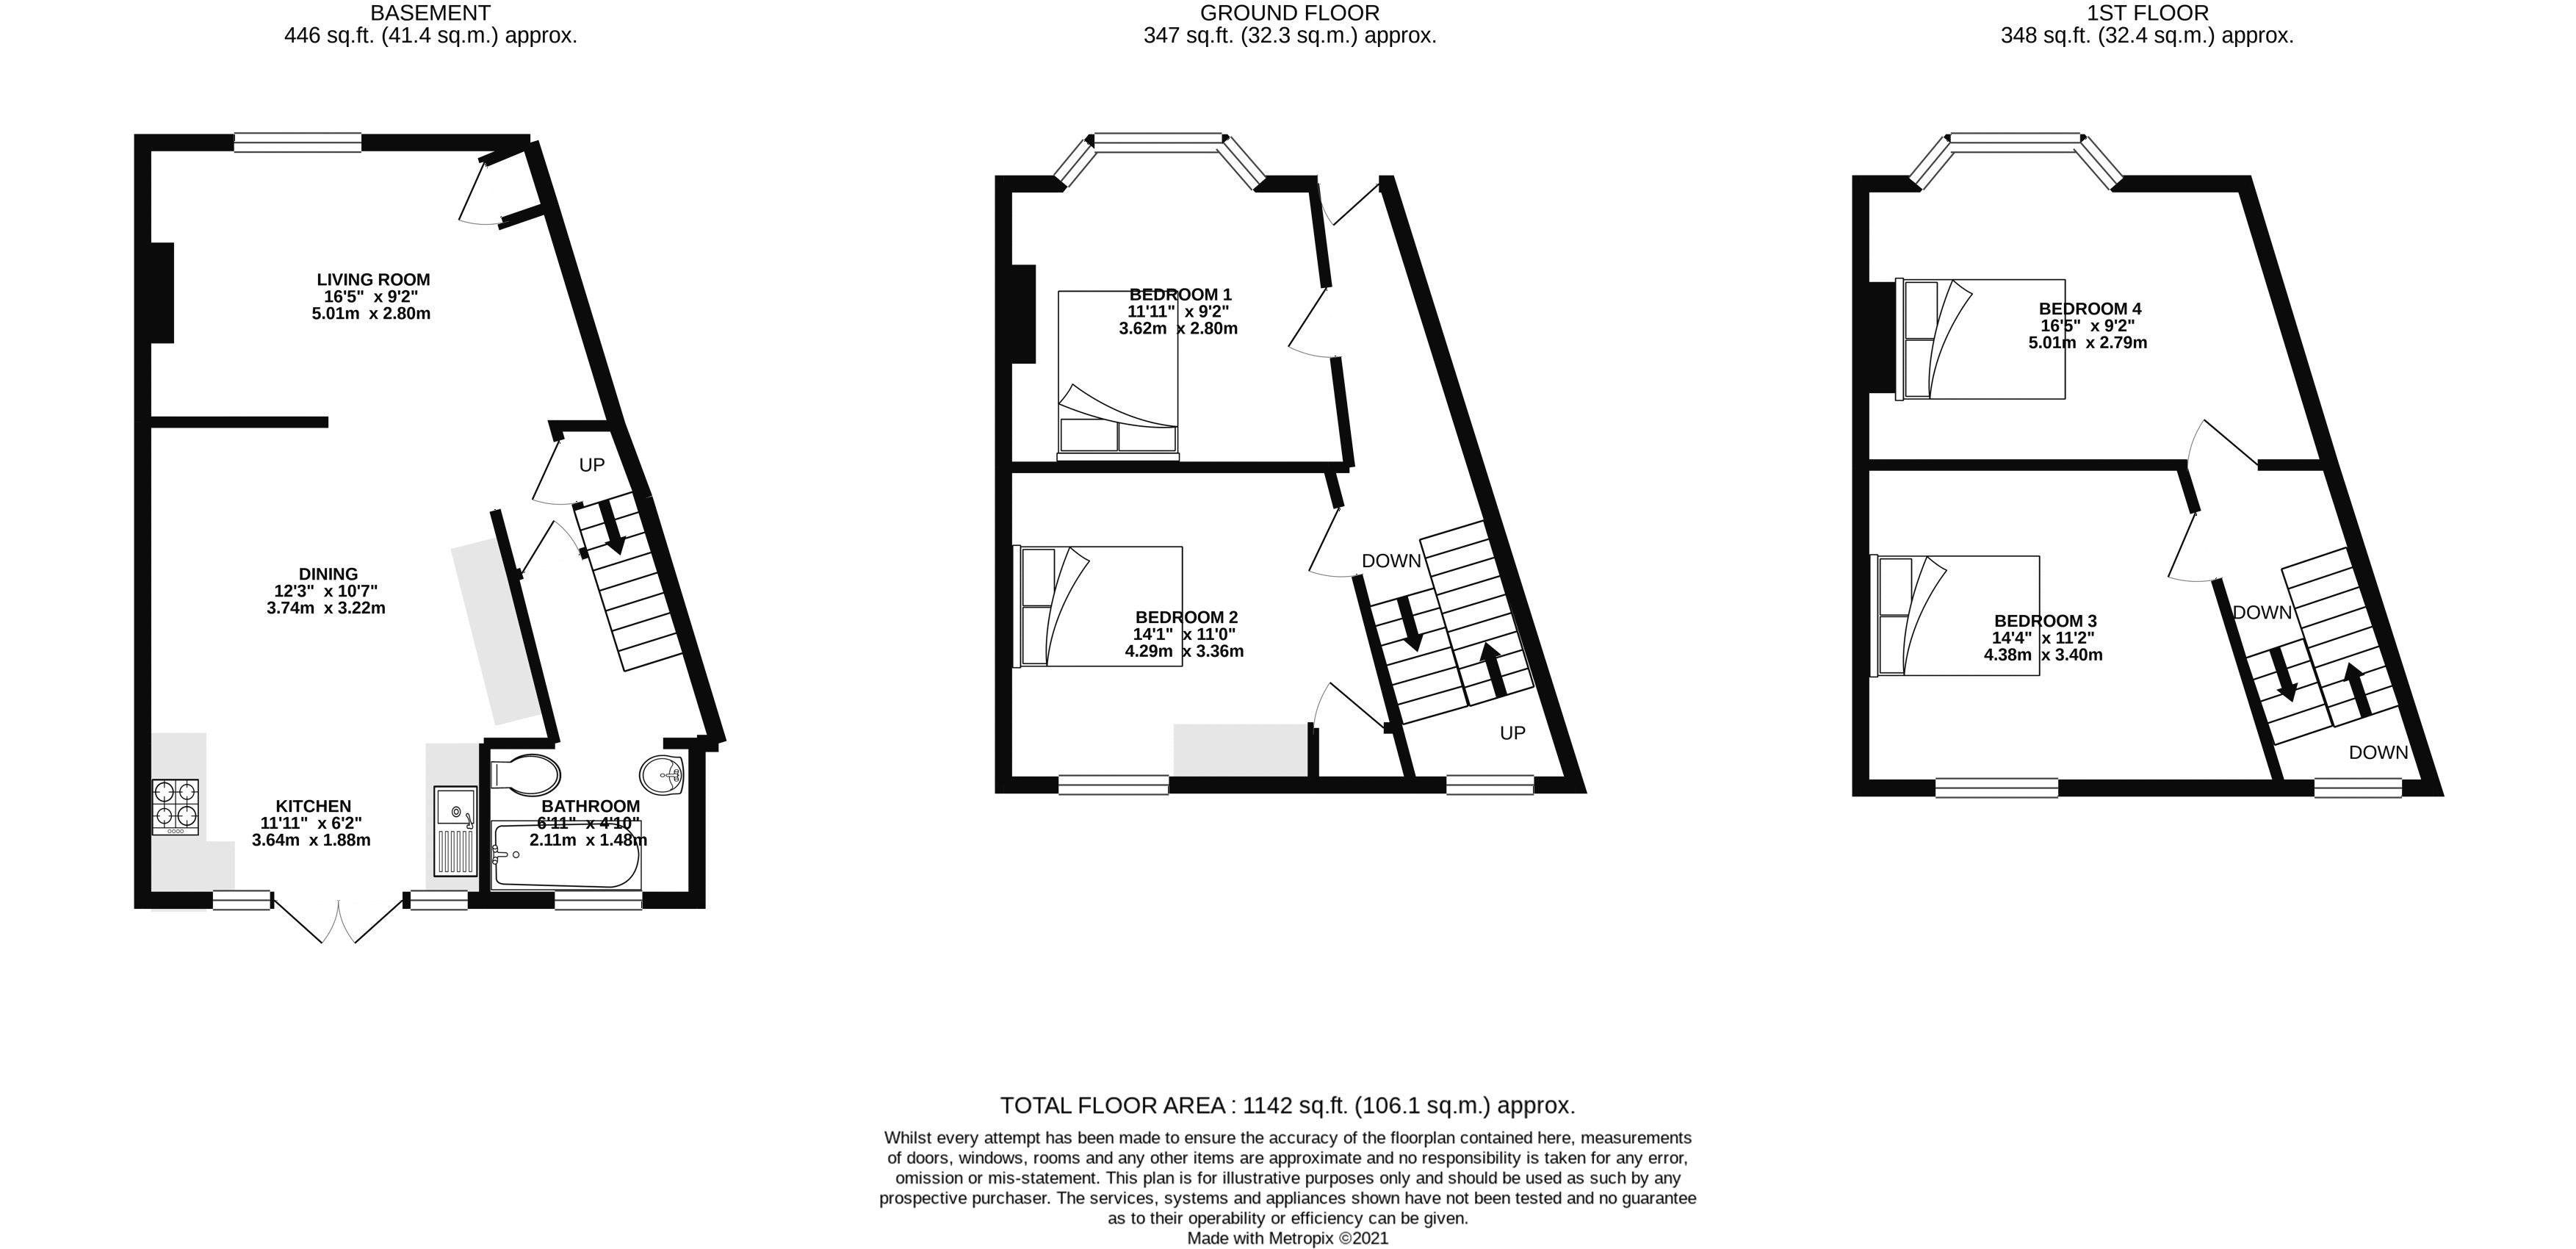 Floor plans for Park Crescent Road , Brighton property for sale in Lewes Road South, Brighton by Coapt